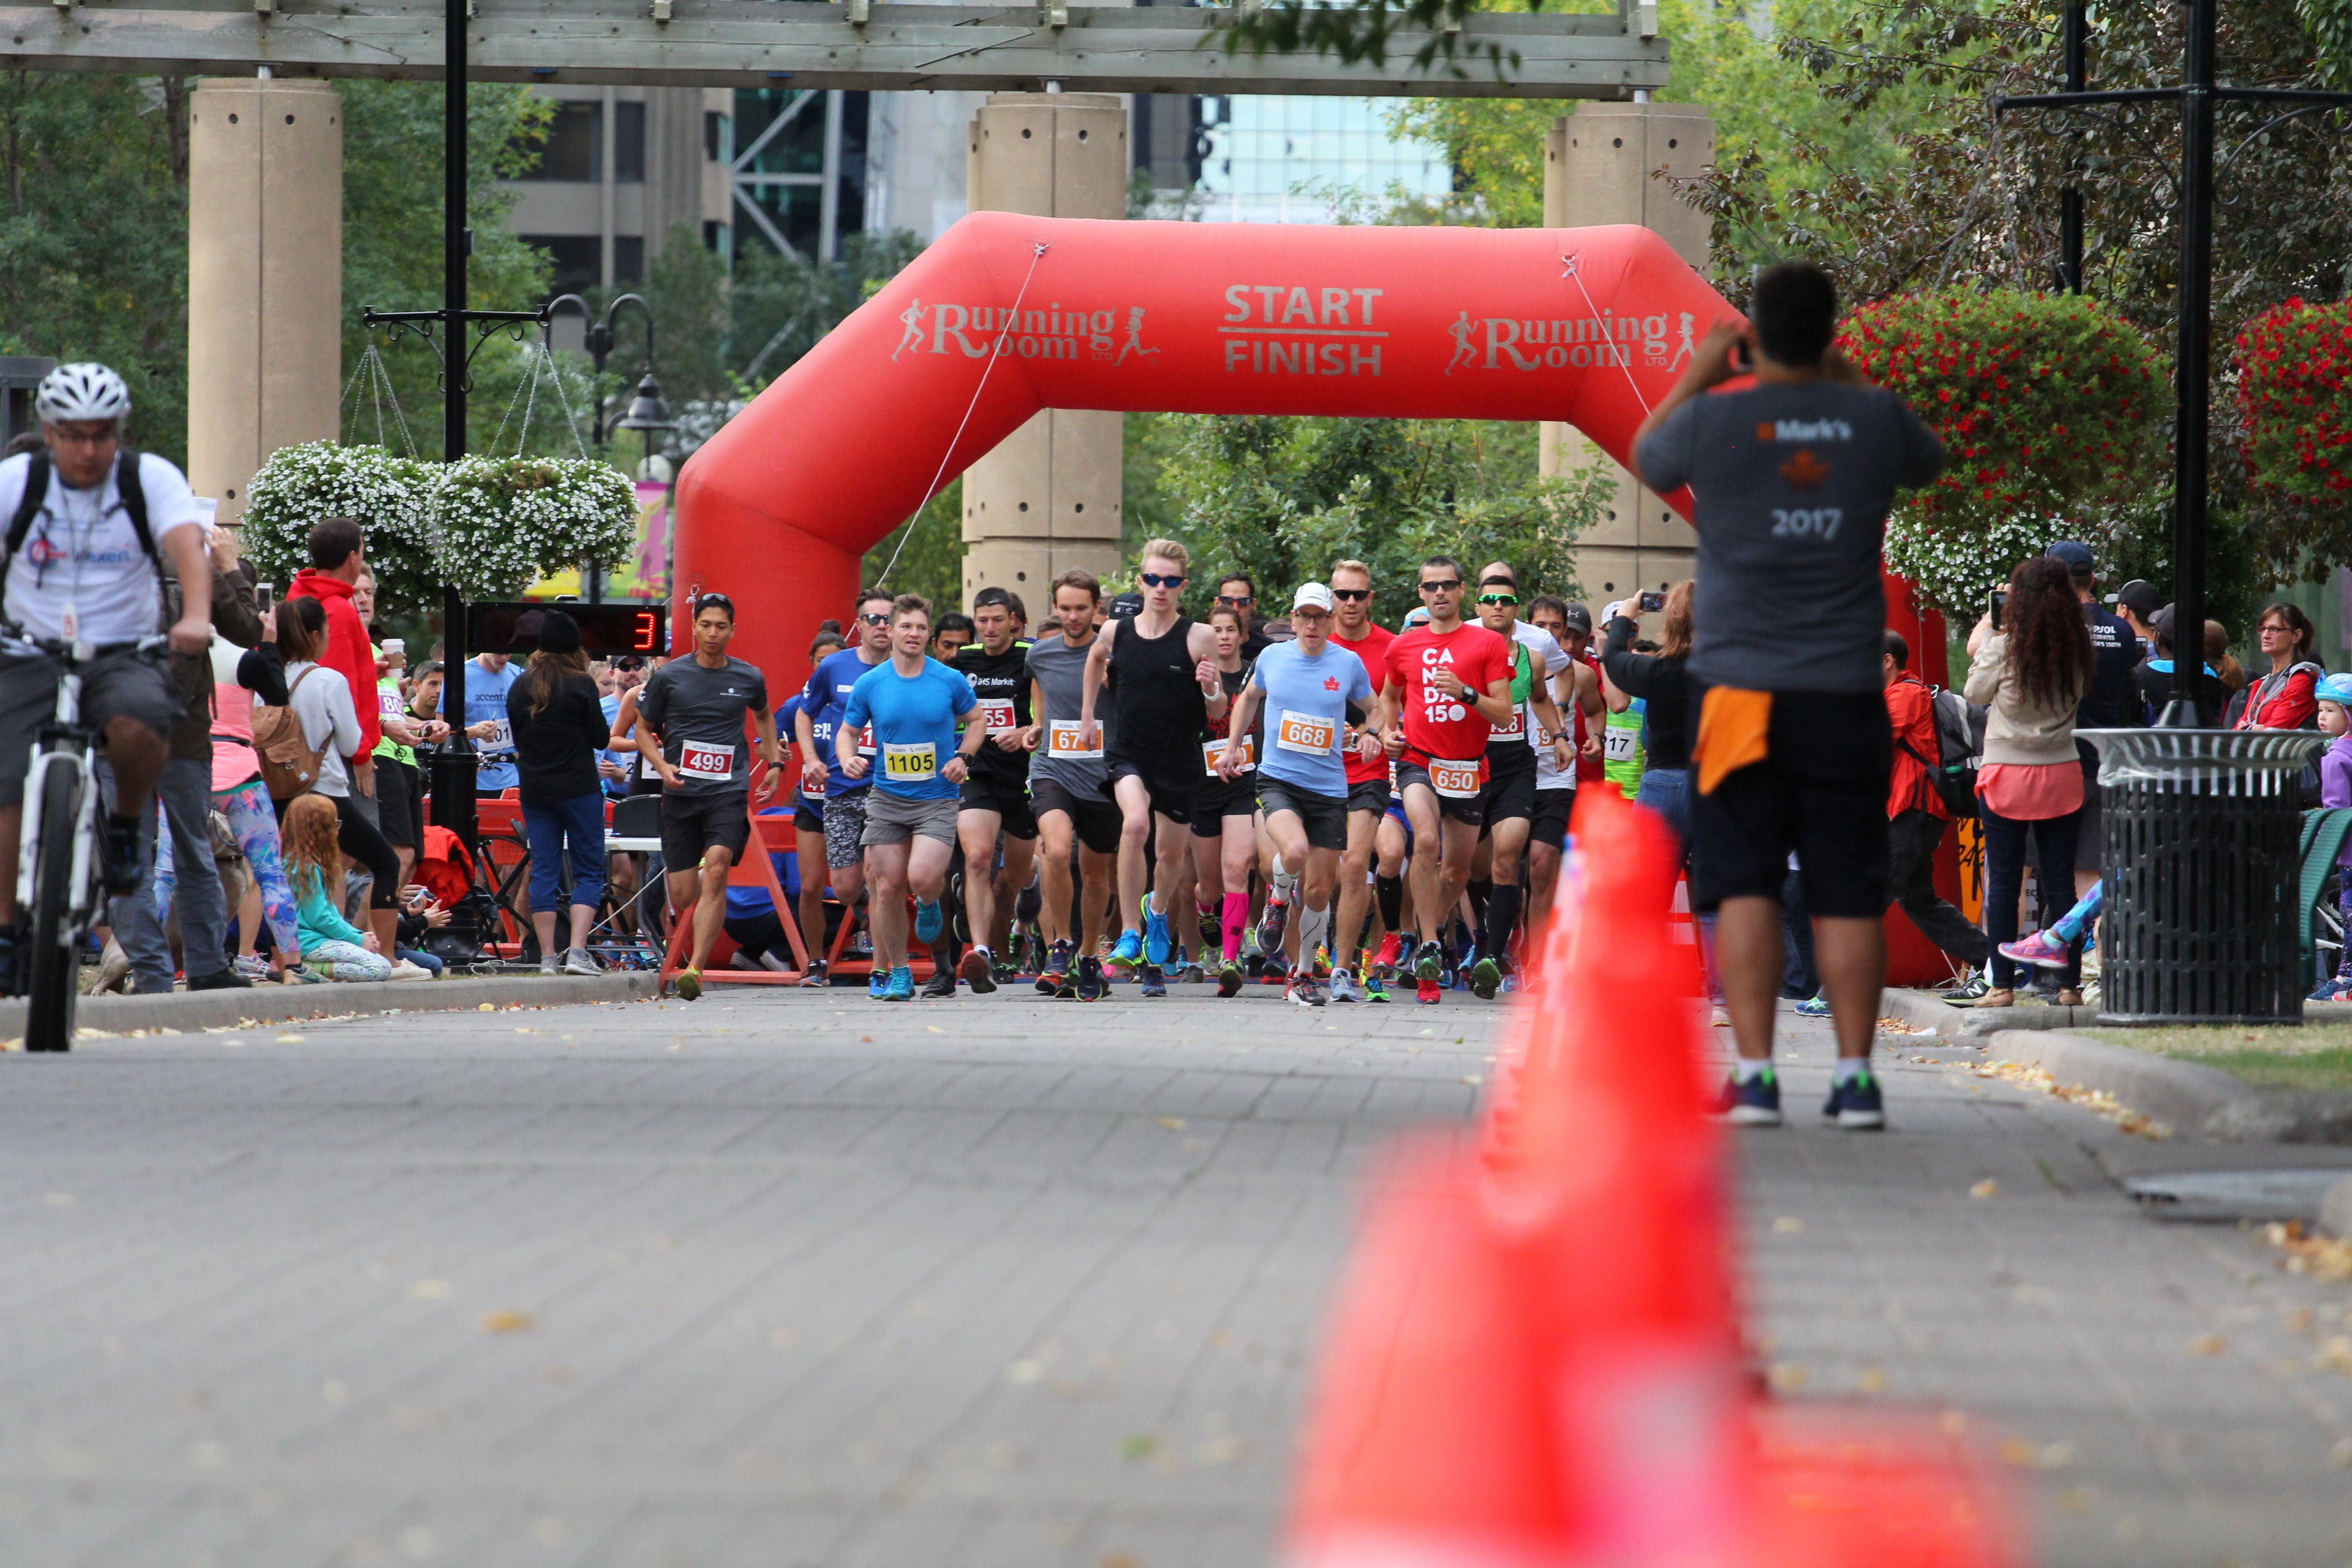 Runners taking off from the start line 10K